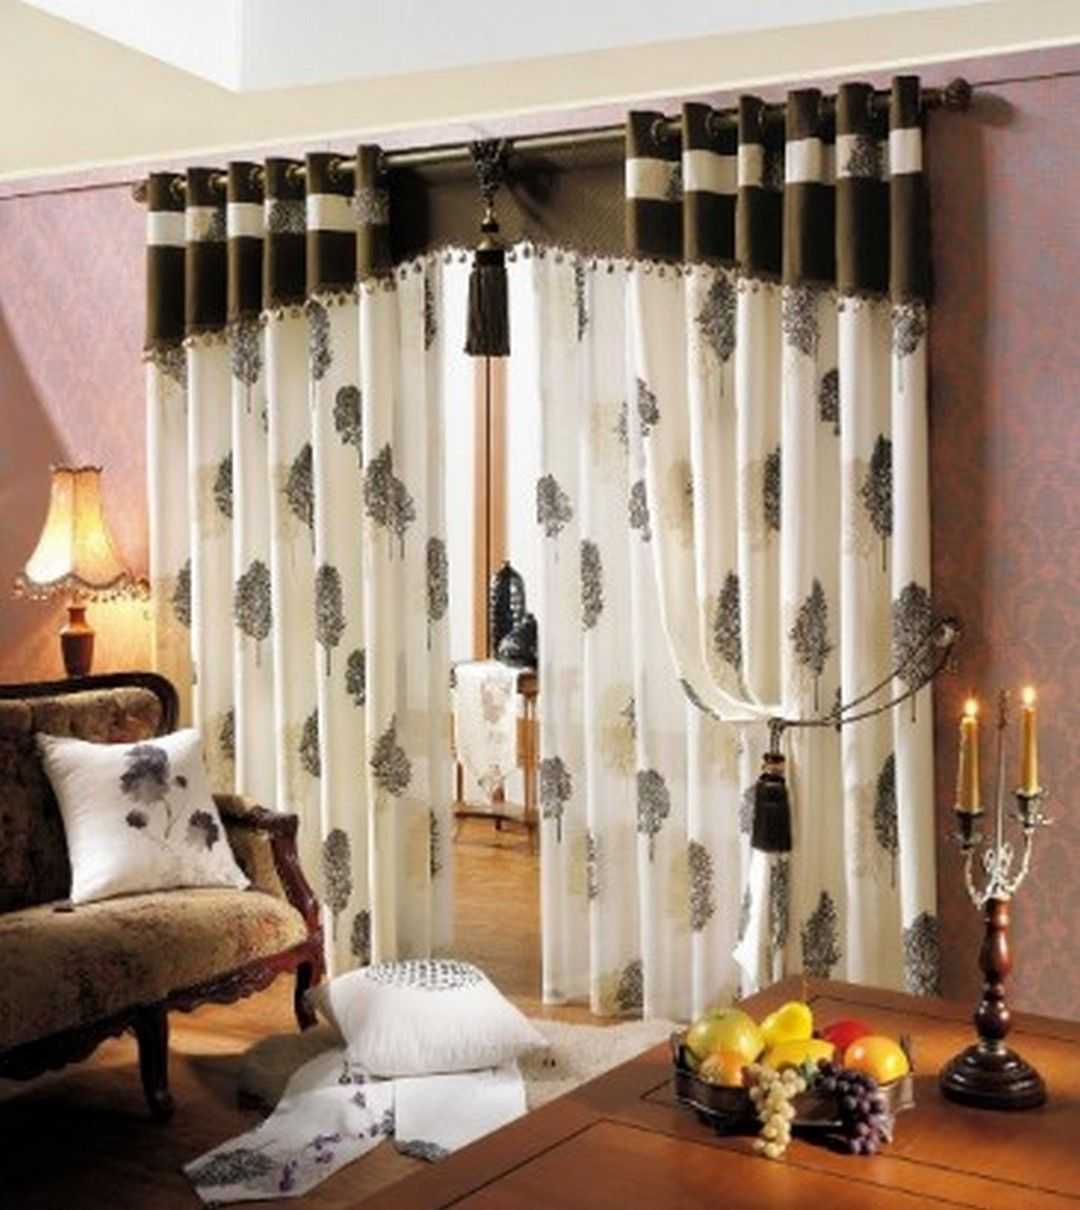 6 Home Decor With Awesome Curtains Home Decor Curtain Designs Drapery Designs